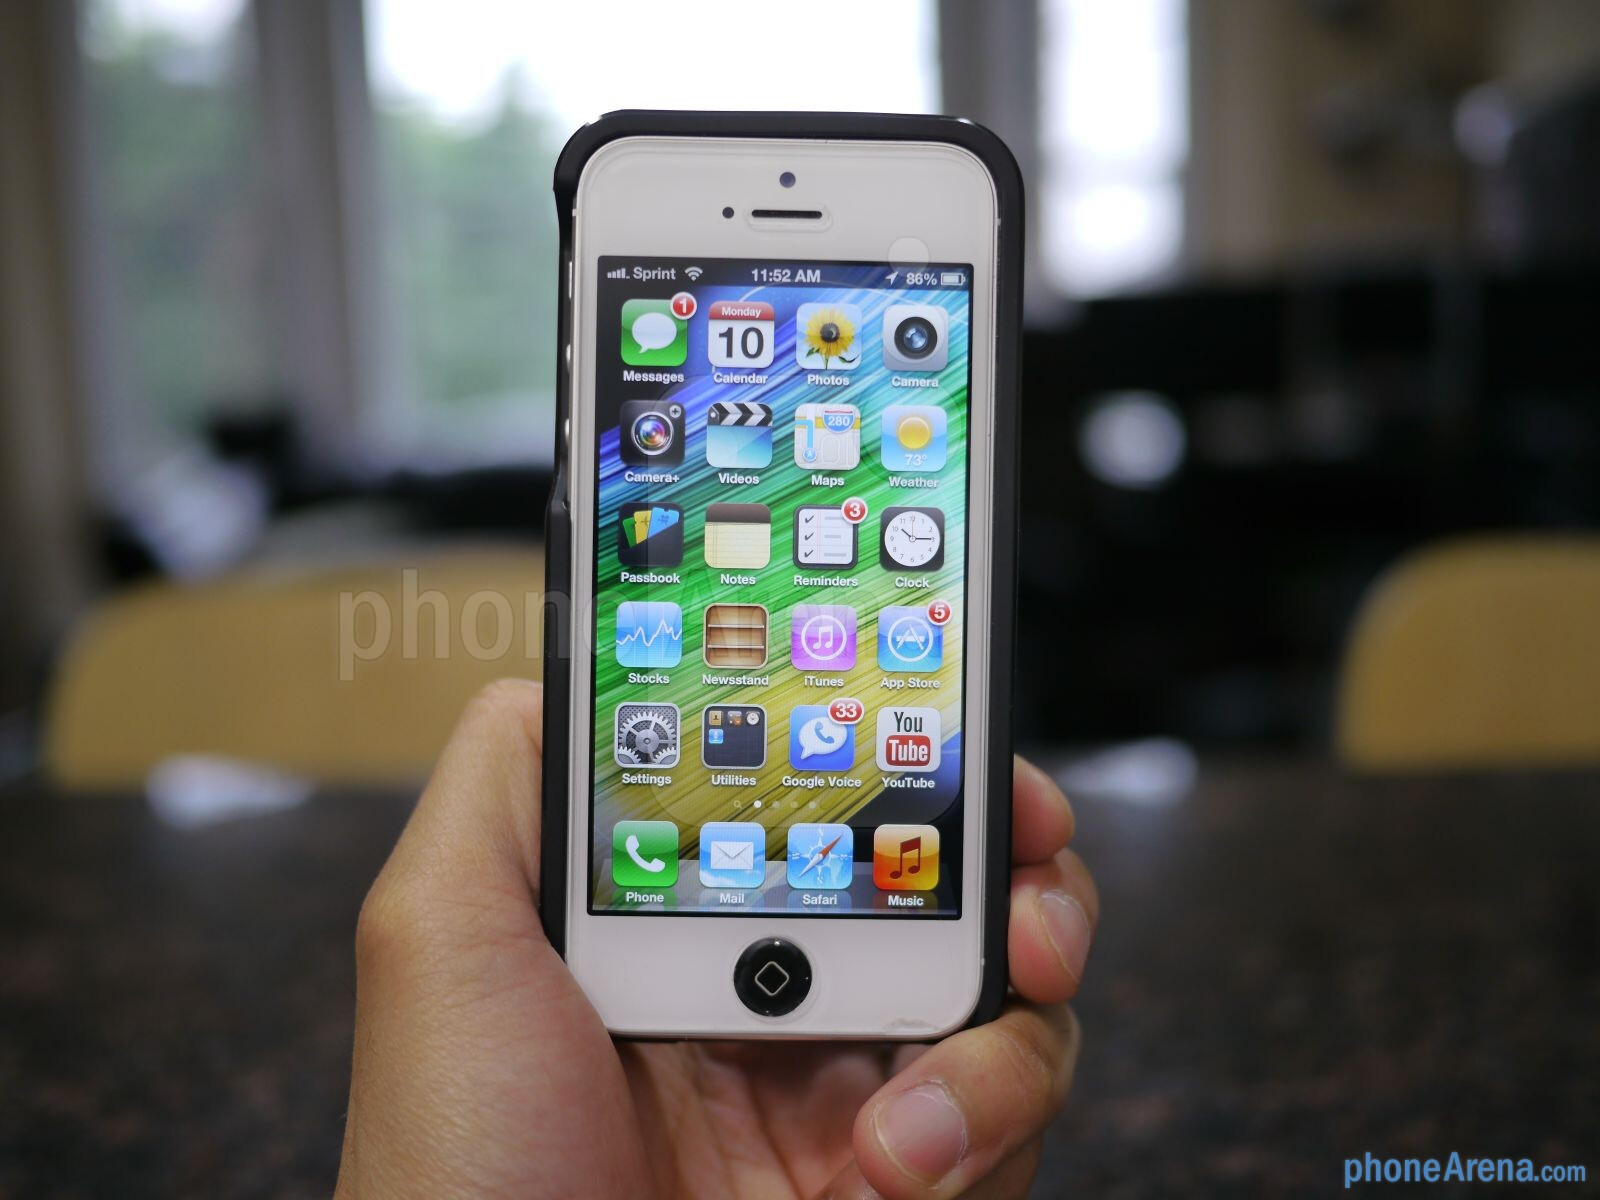 Mycharge Freedom 2000 Iphone 5 Battery Case Hands On